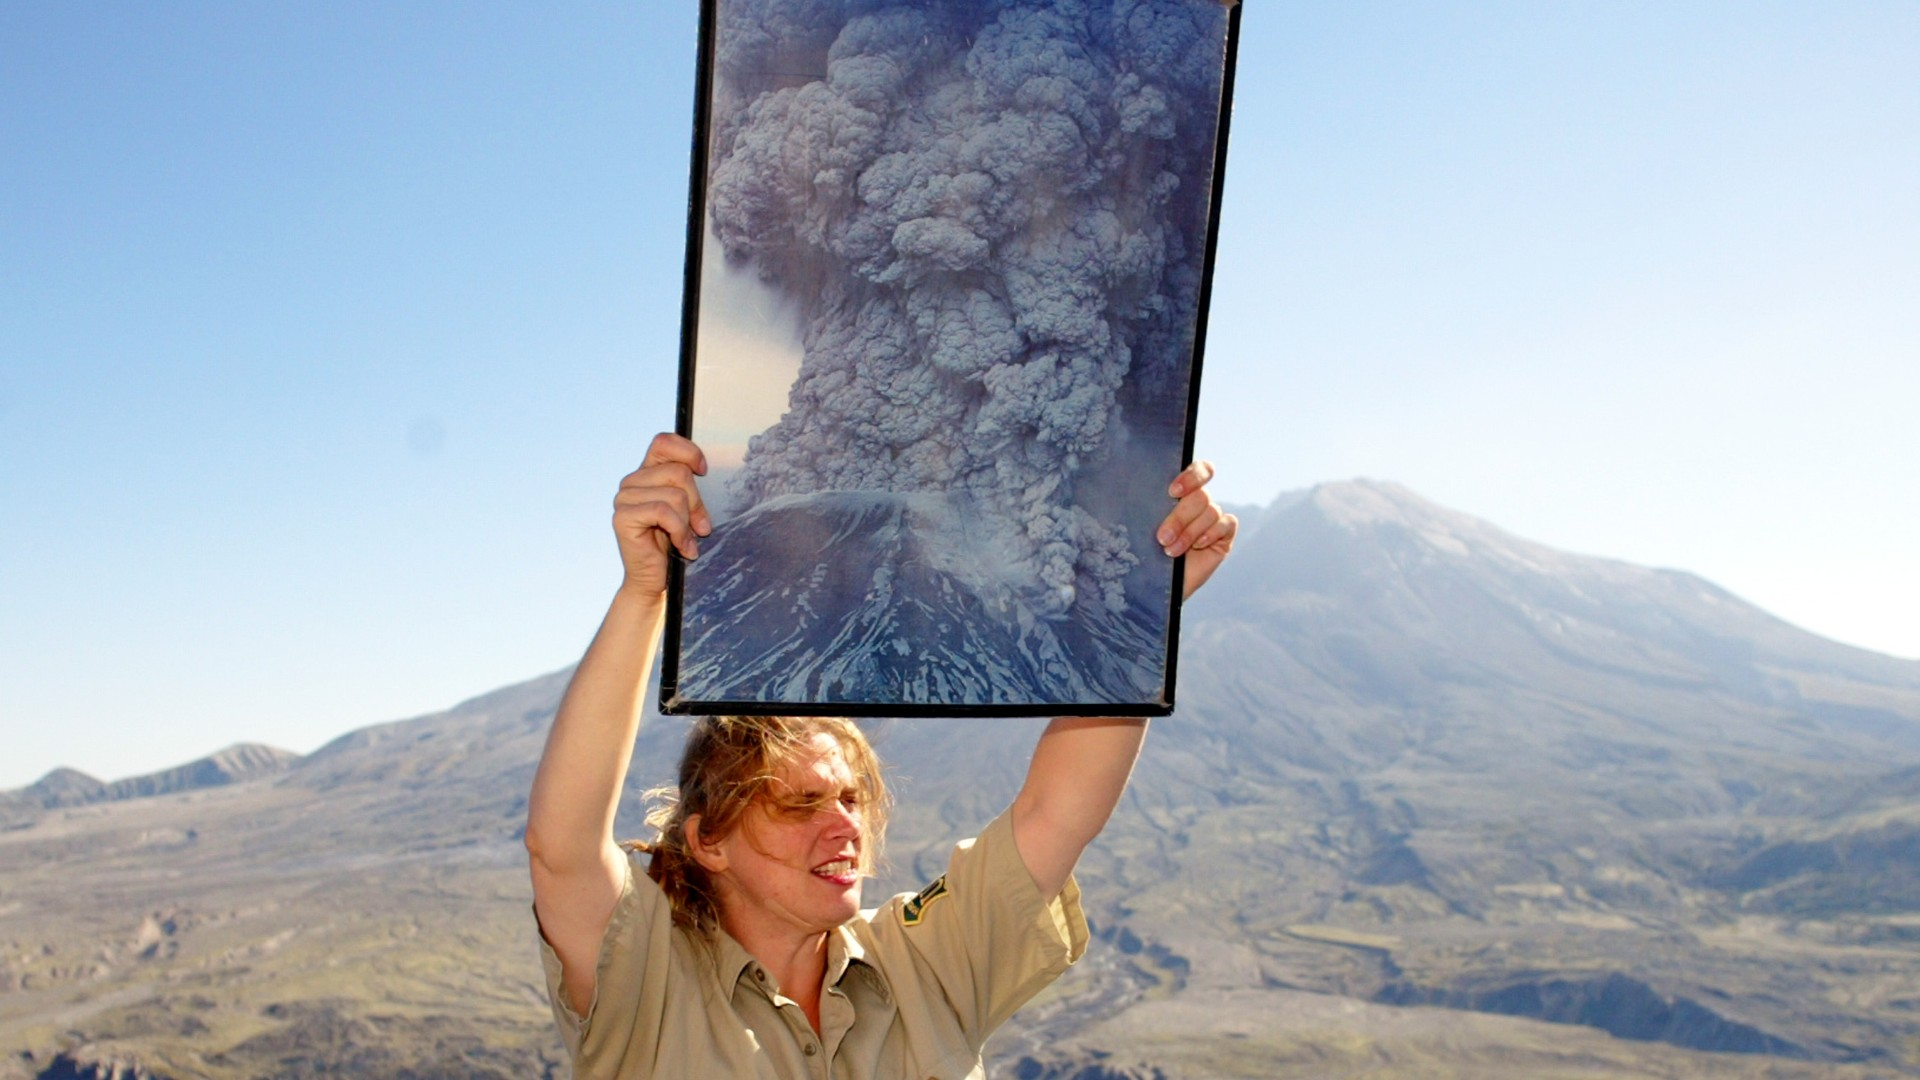 Forest service employee Anna White holds up a photo of the original eruption in 1980 while talking to visitors at Mount St. Helens from the Johnston Ridge Observatory on October 1, 2004 (Mitchelldyer/Getty Images)